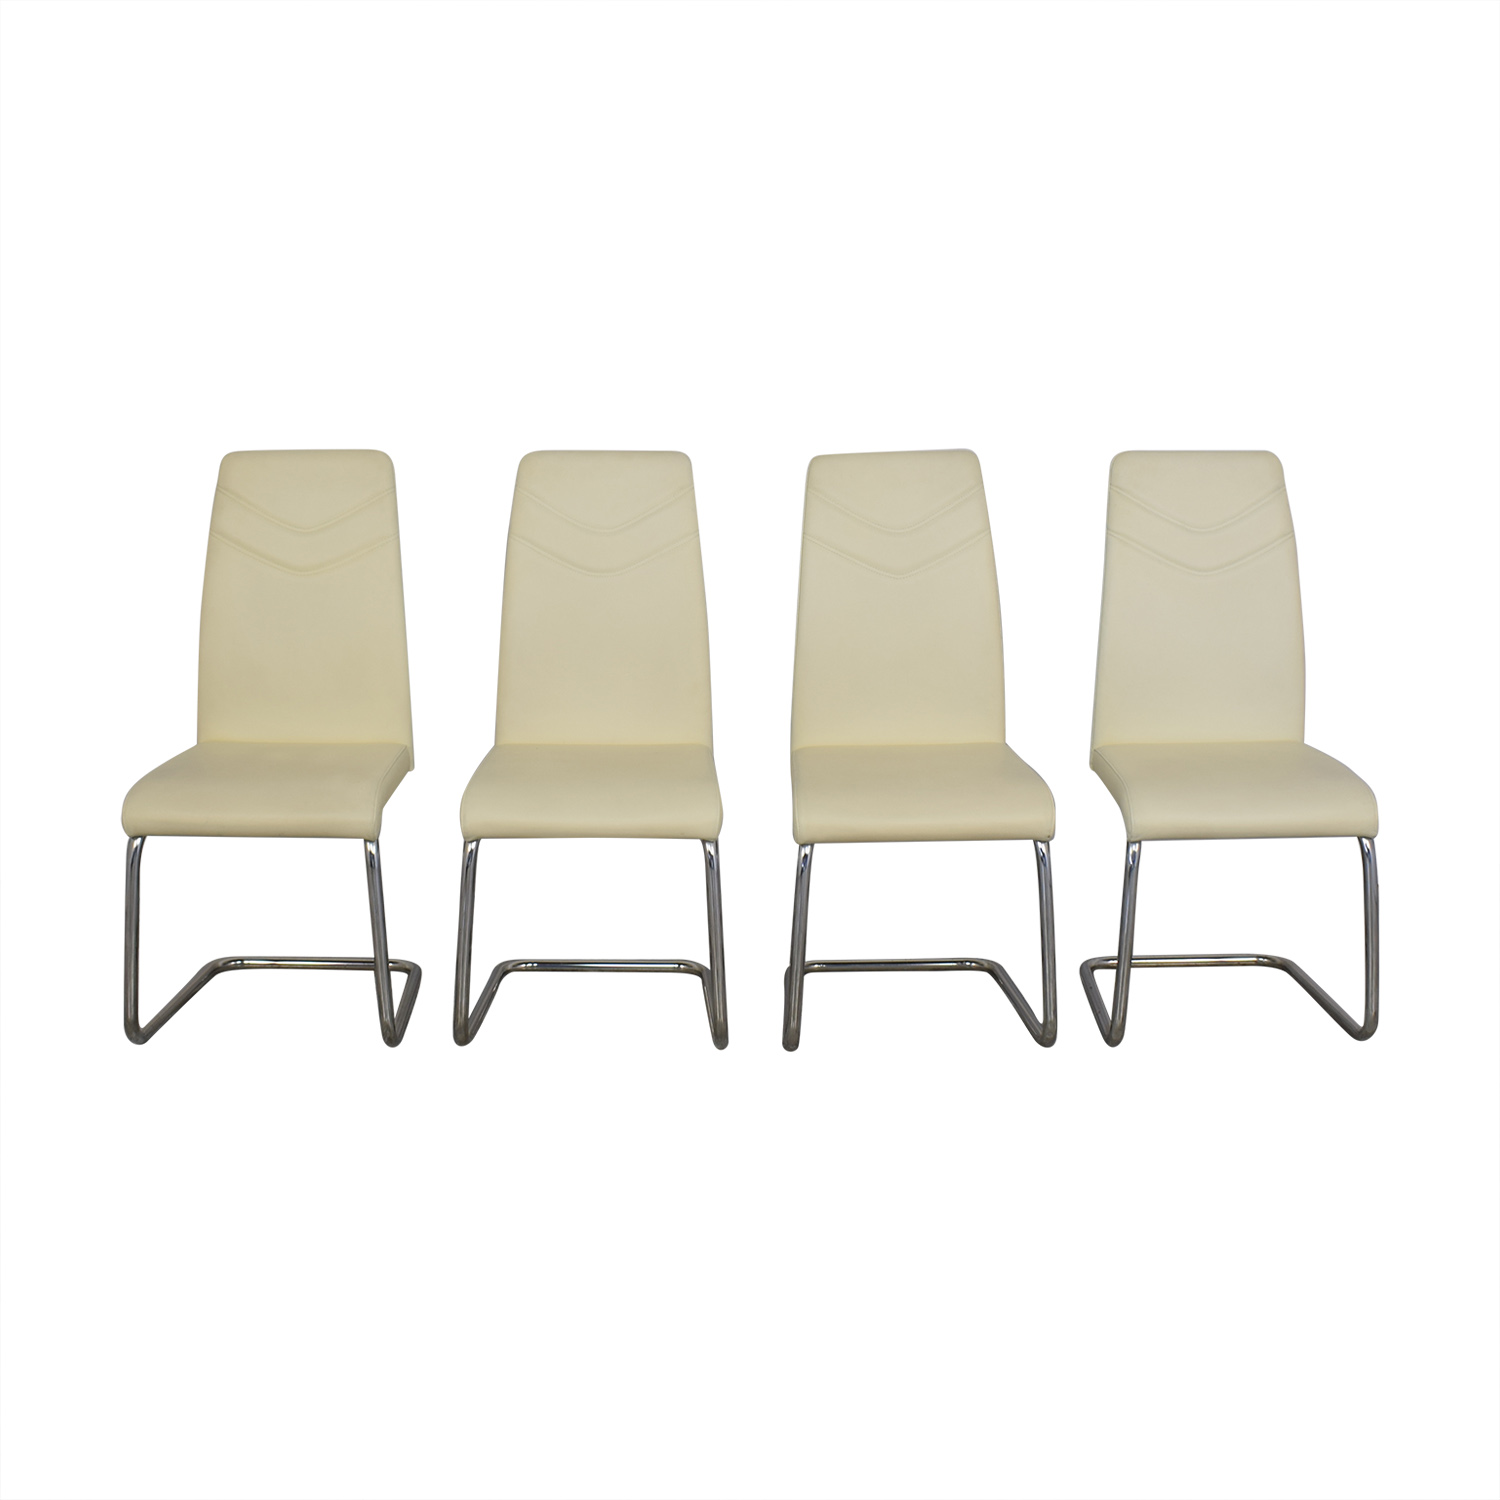 Effezeta Leather Dining Chairs sale